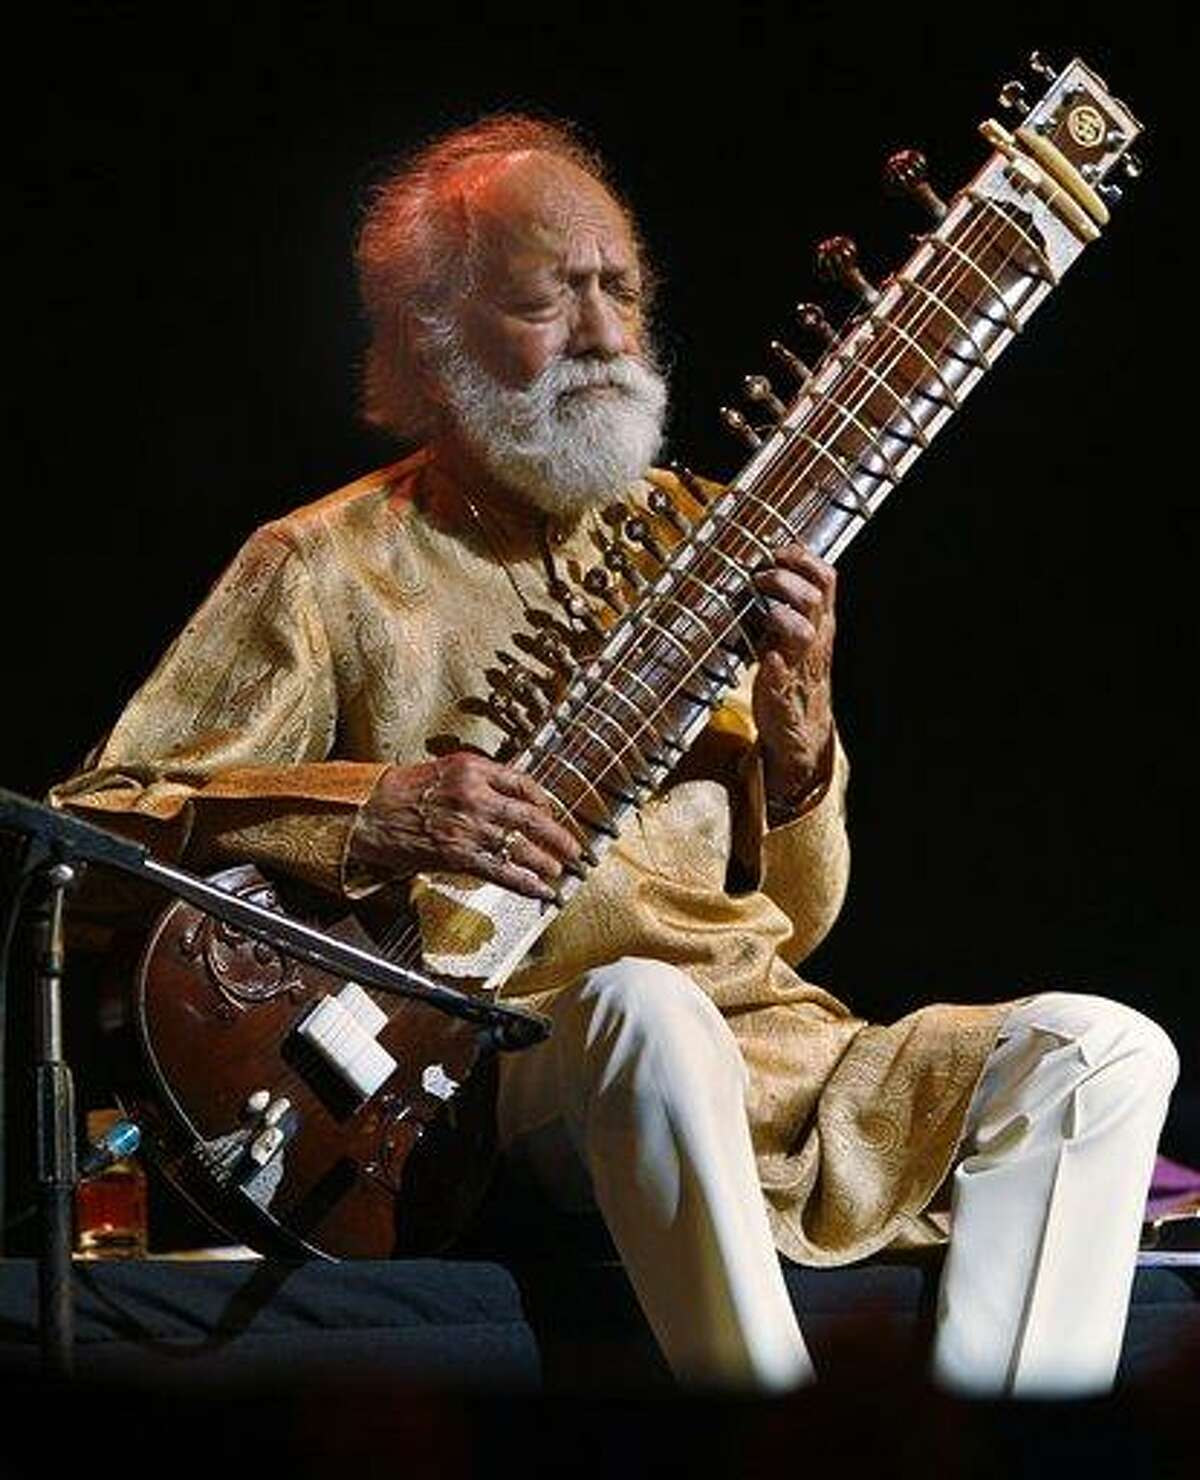 FILE - In this Feb. 7, 2012 file photo, Indian musician and sitar maestro Pandit Ravi Shankar, 92, performs during a concert in Bangalore, India. Shankar, the sitar virtuoso who became a hippie musical icon of the 1960s after hobnobbing with the Beatles and who introduced traditional Indian ragas to Western audiences over an eight-decade career, died Tuesday, Dec. 11, 2012. He was 92. (AP Photo/Aijaz Rahi, File)